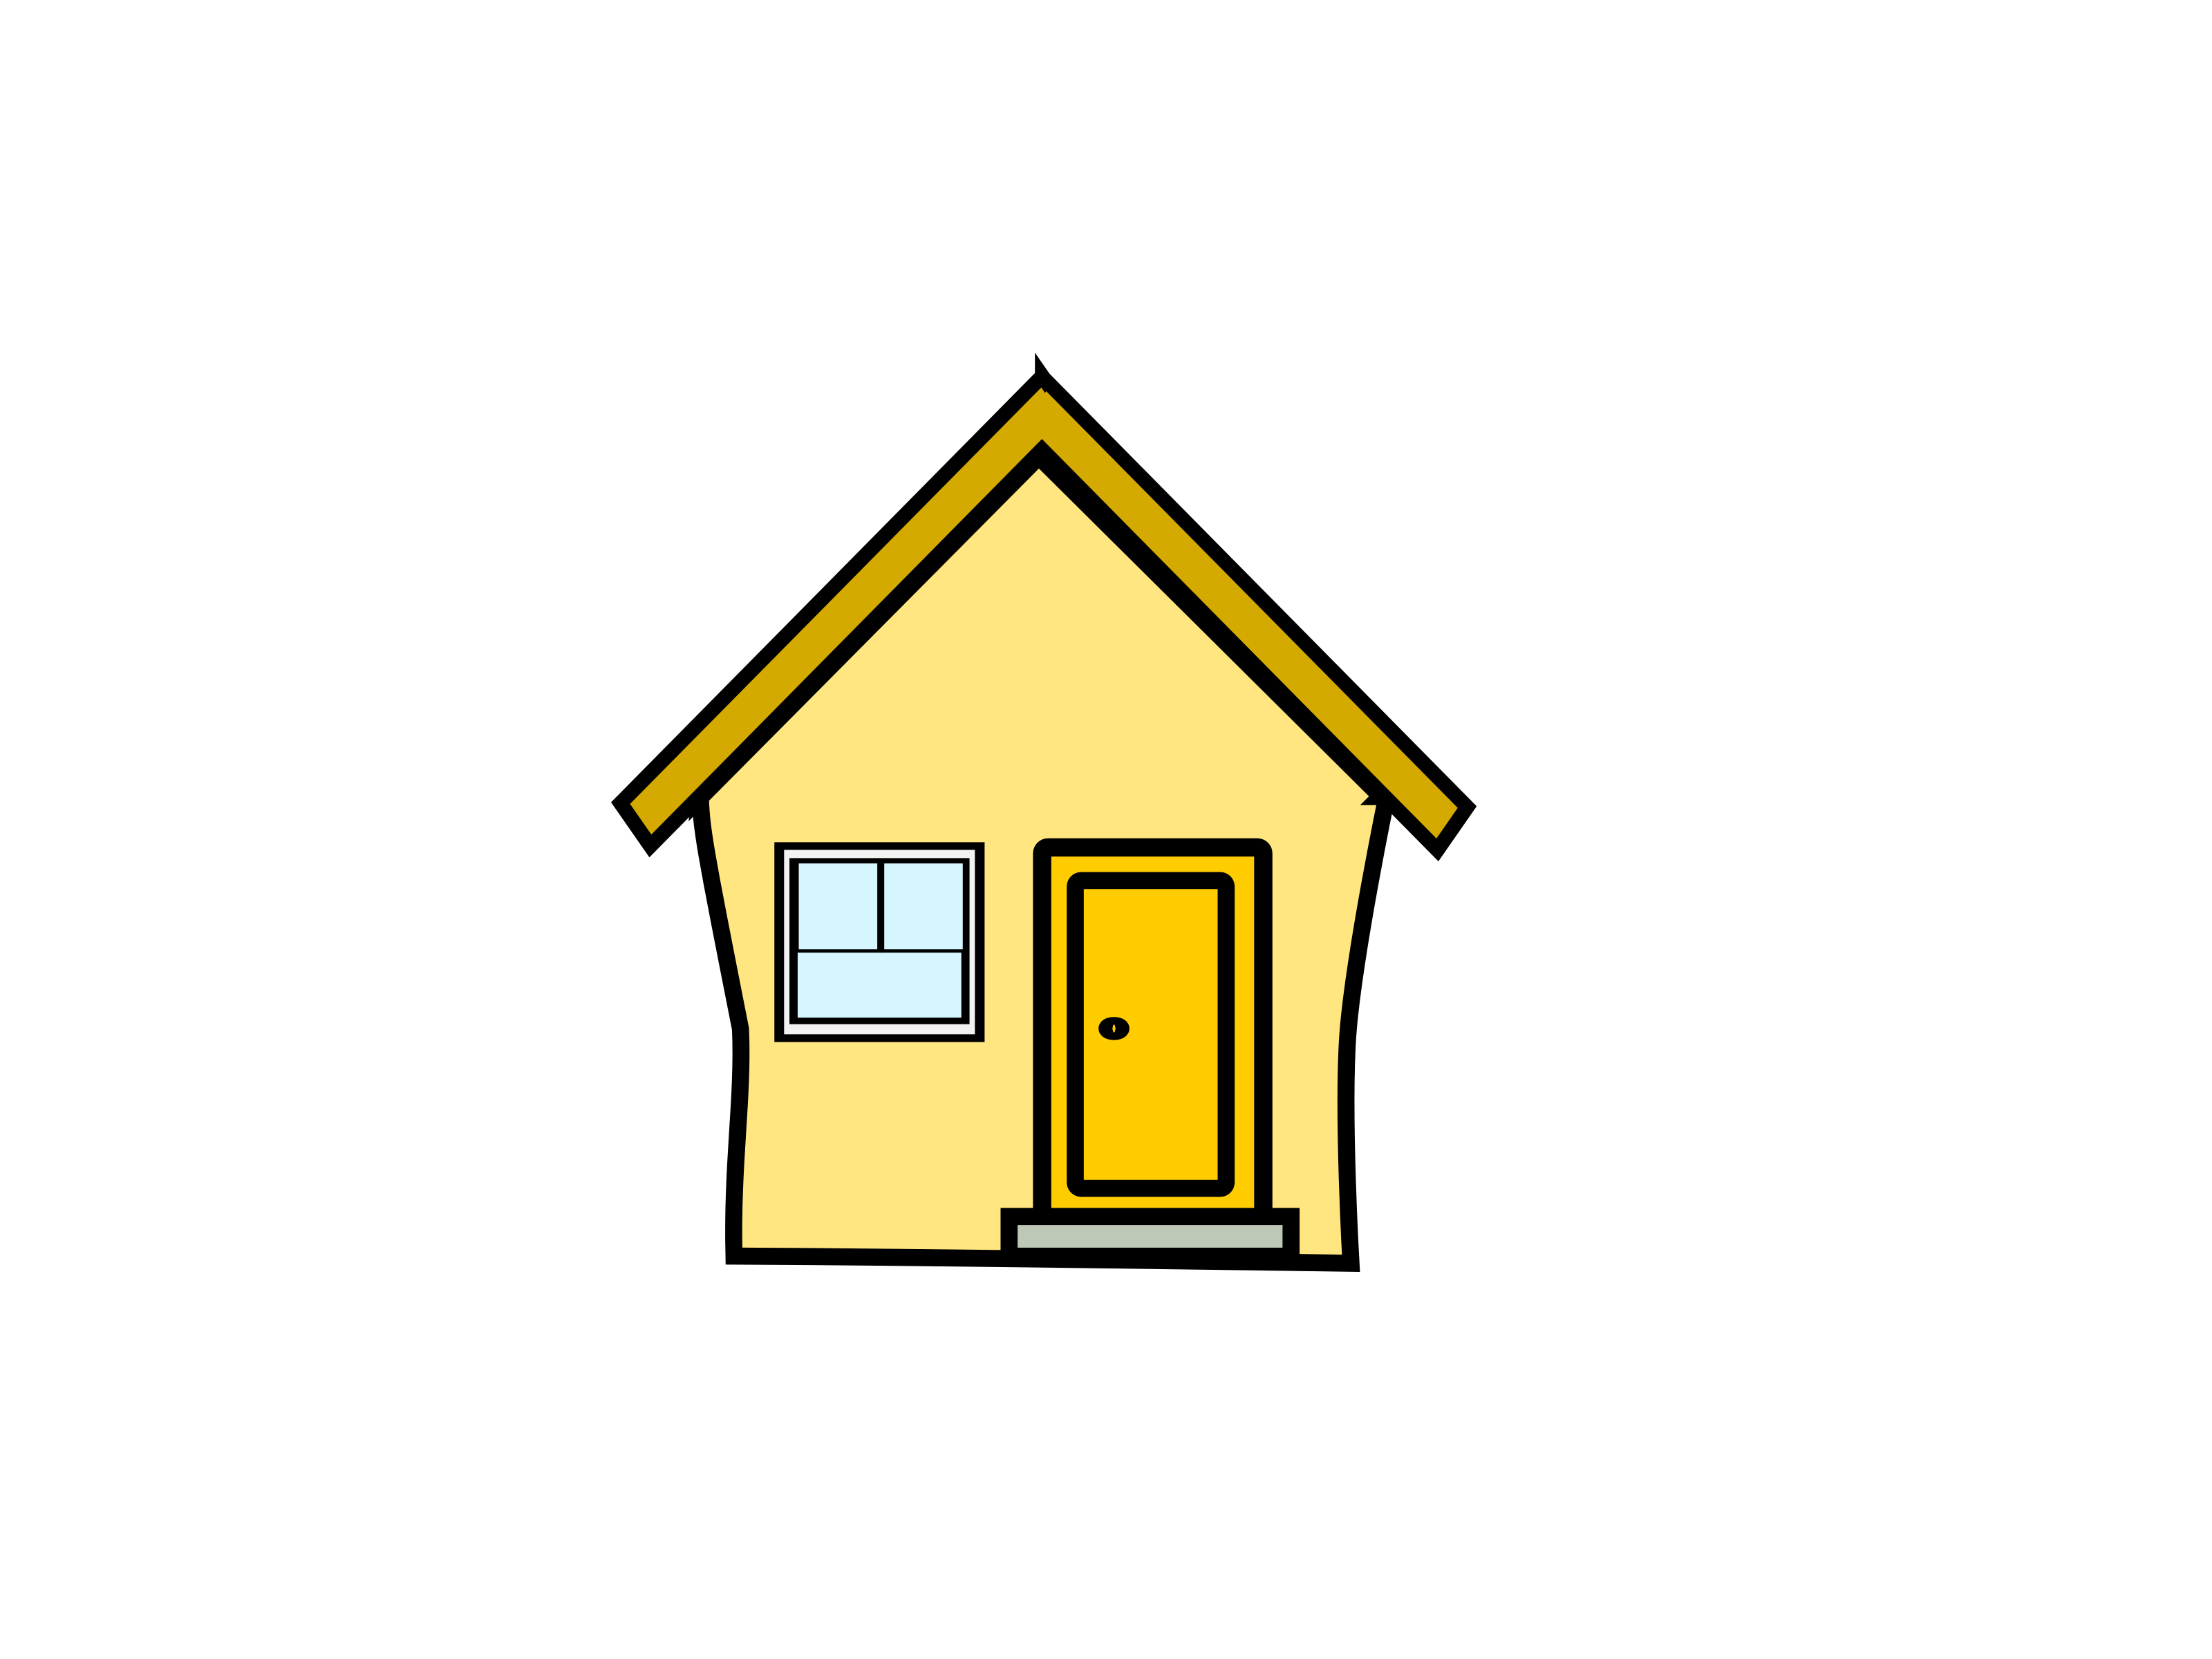 Hosue clipart yellow (Yellow Clipart House) gelbes haus